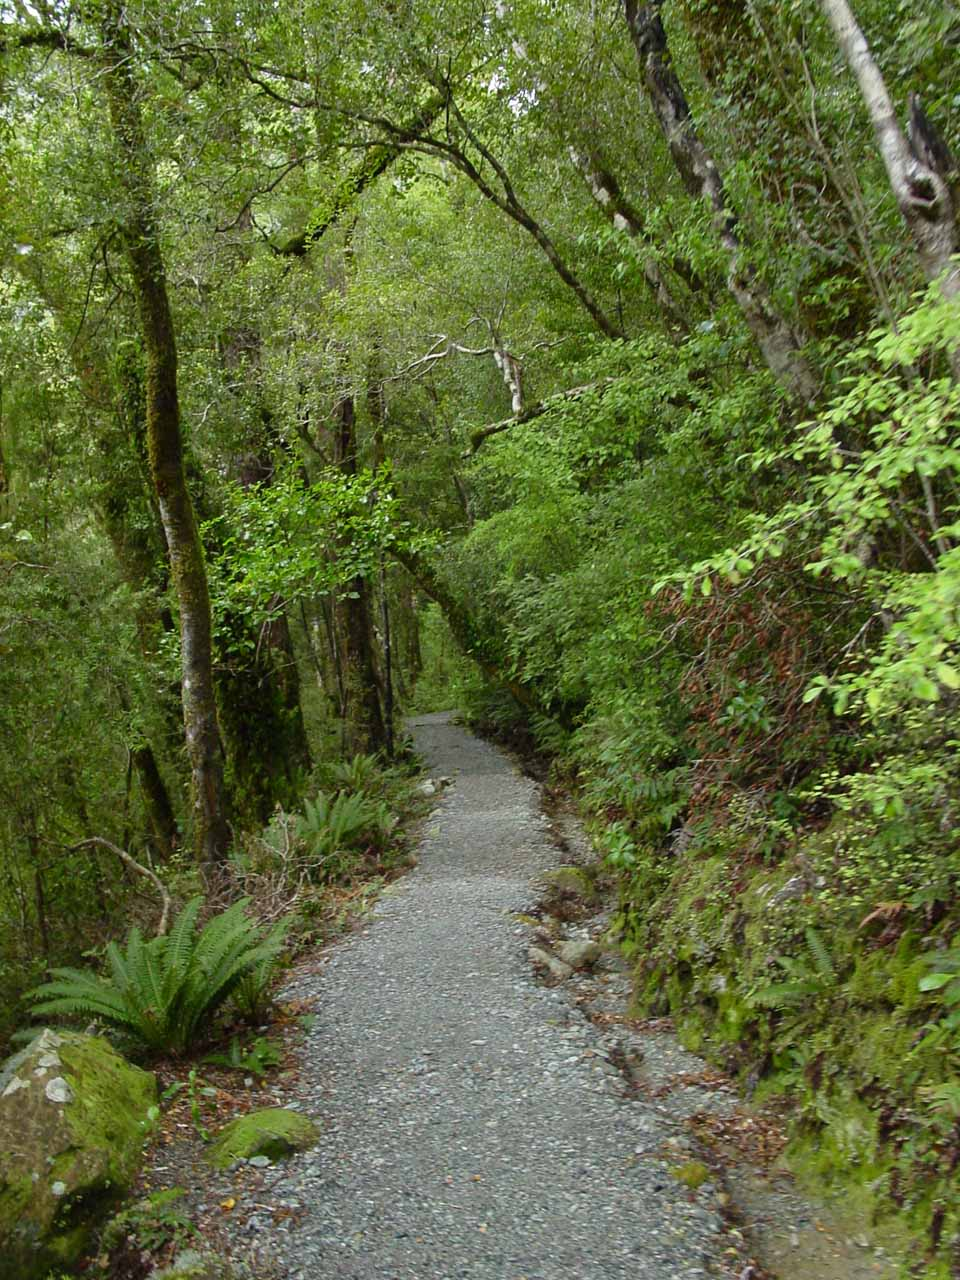 The gently uphill bush track for Humboldt Falls was very lush and the track itself was pretty well developed